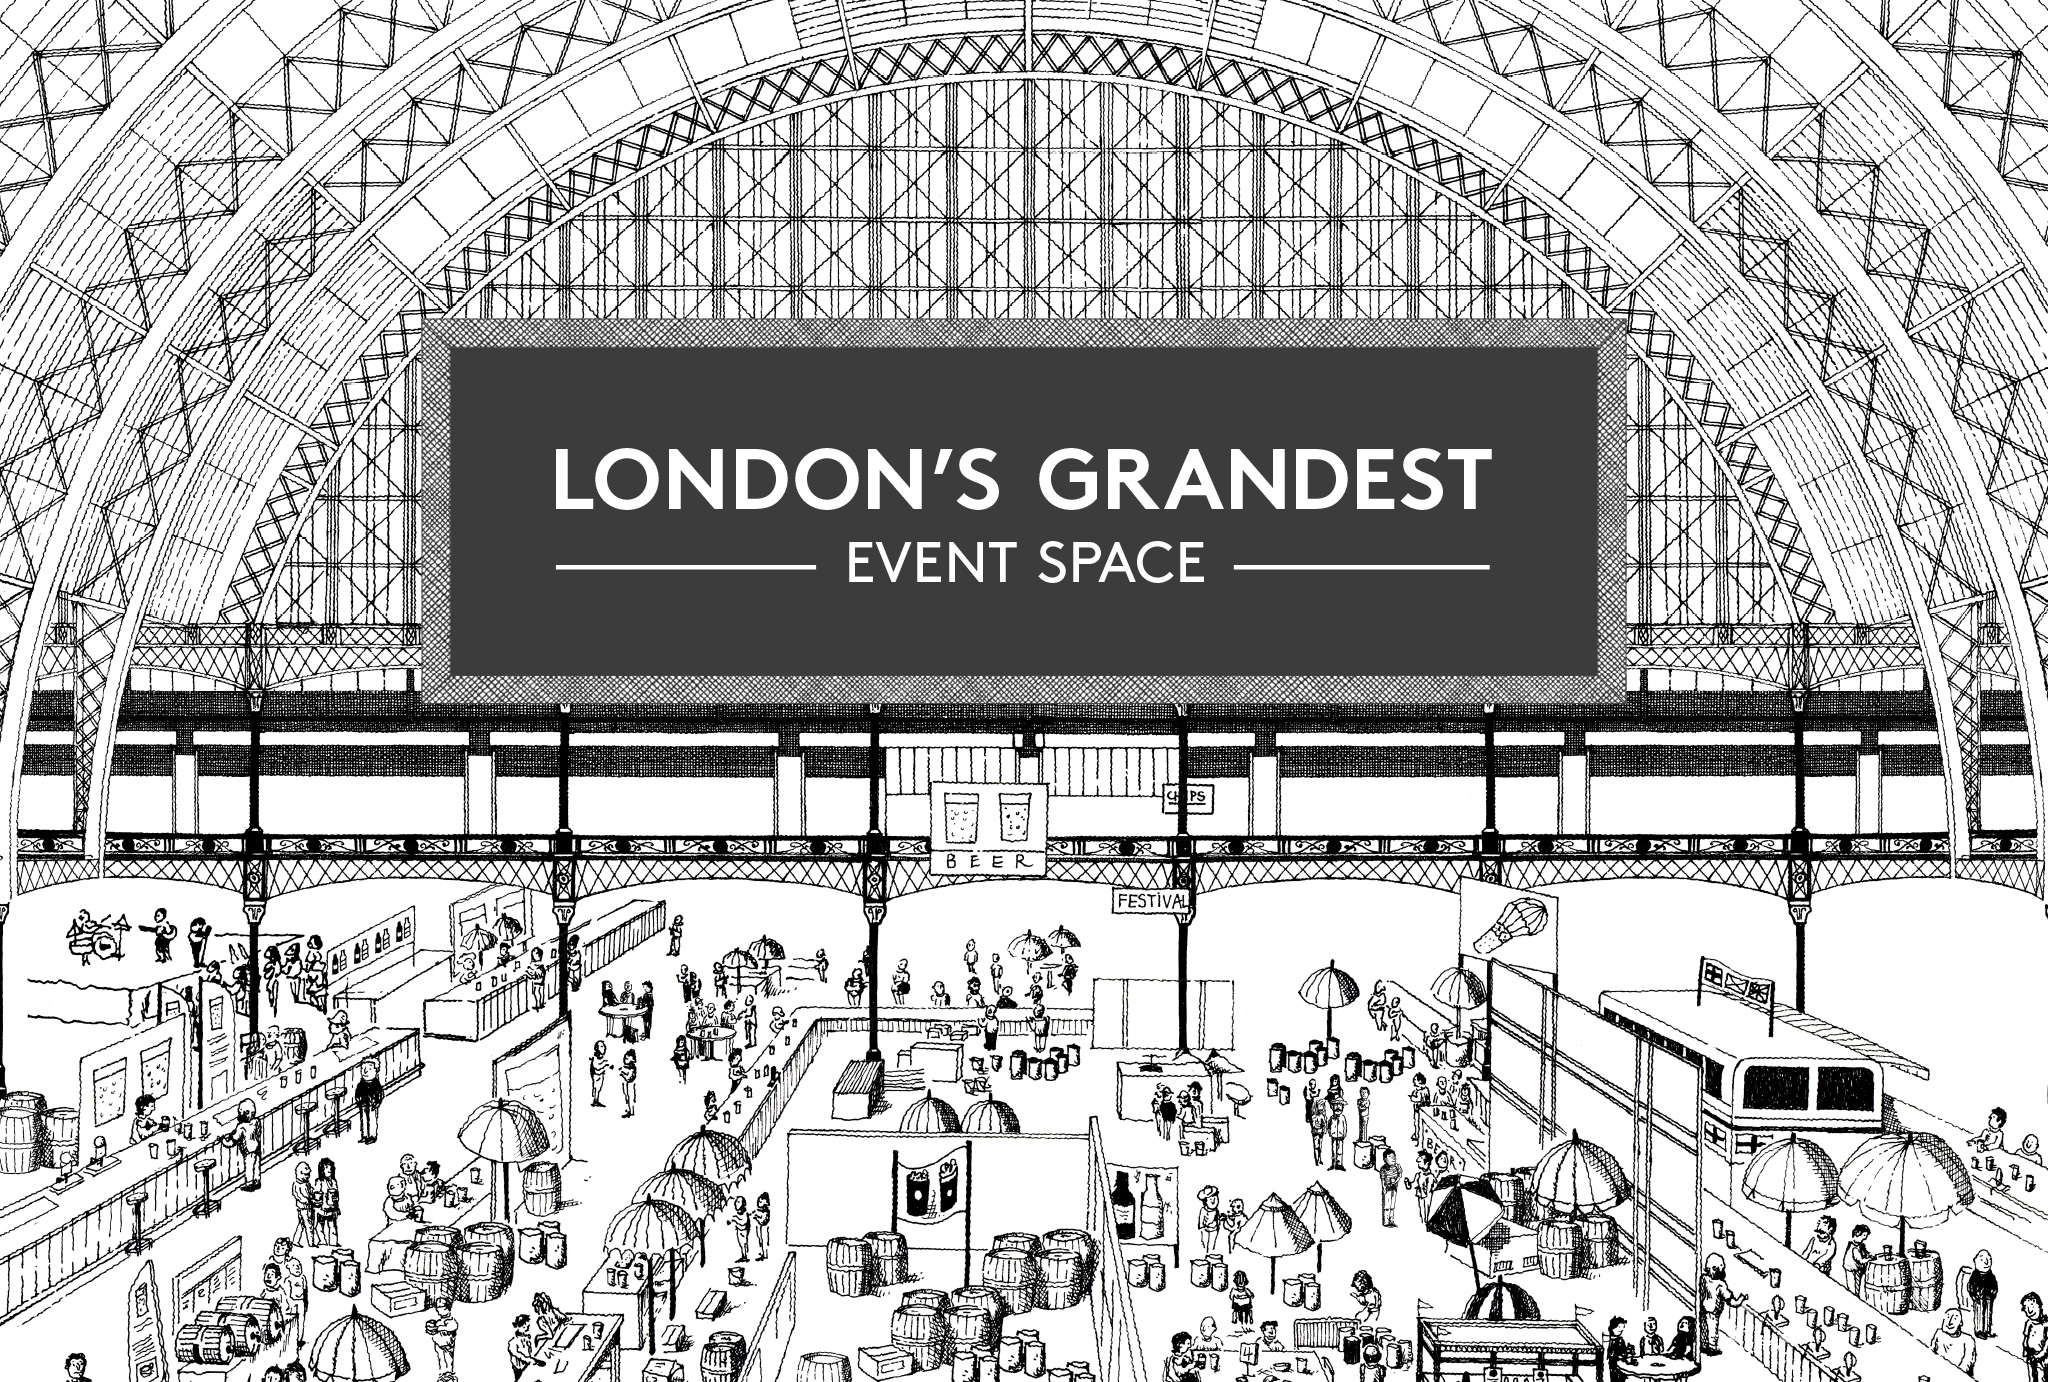 black and white, hand draw illustration of Olympia London